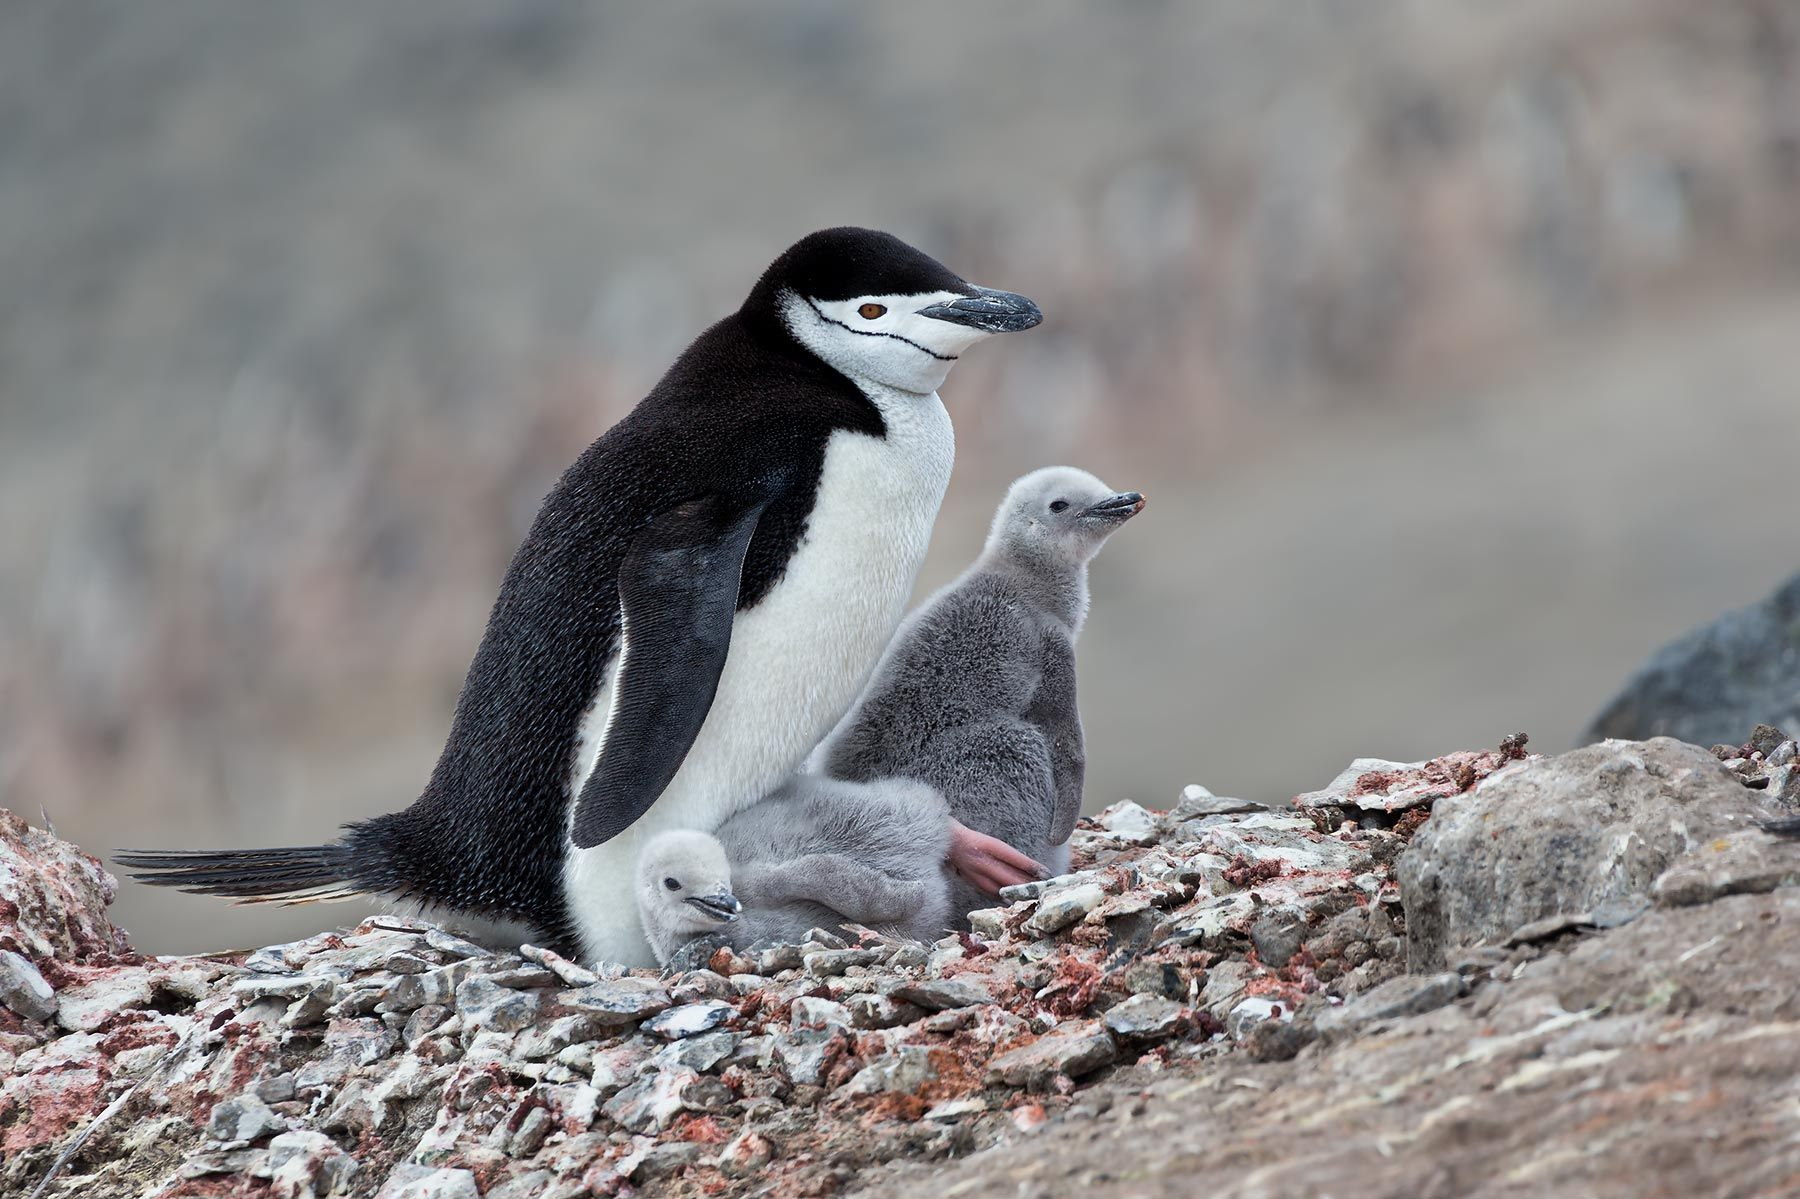 Chinstrap-Penguin-with-two-chicks-on-nest_E7T4331-Bailey-Head,-Deception-Island,-Antarctica.jpg